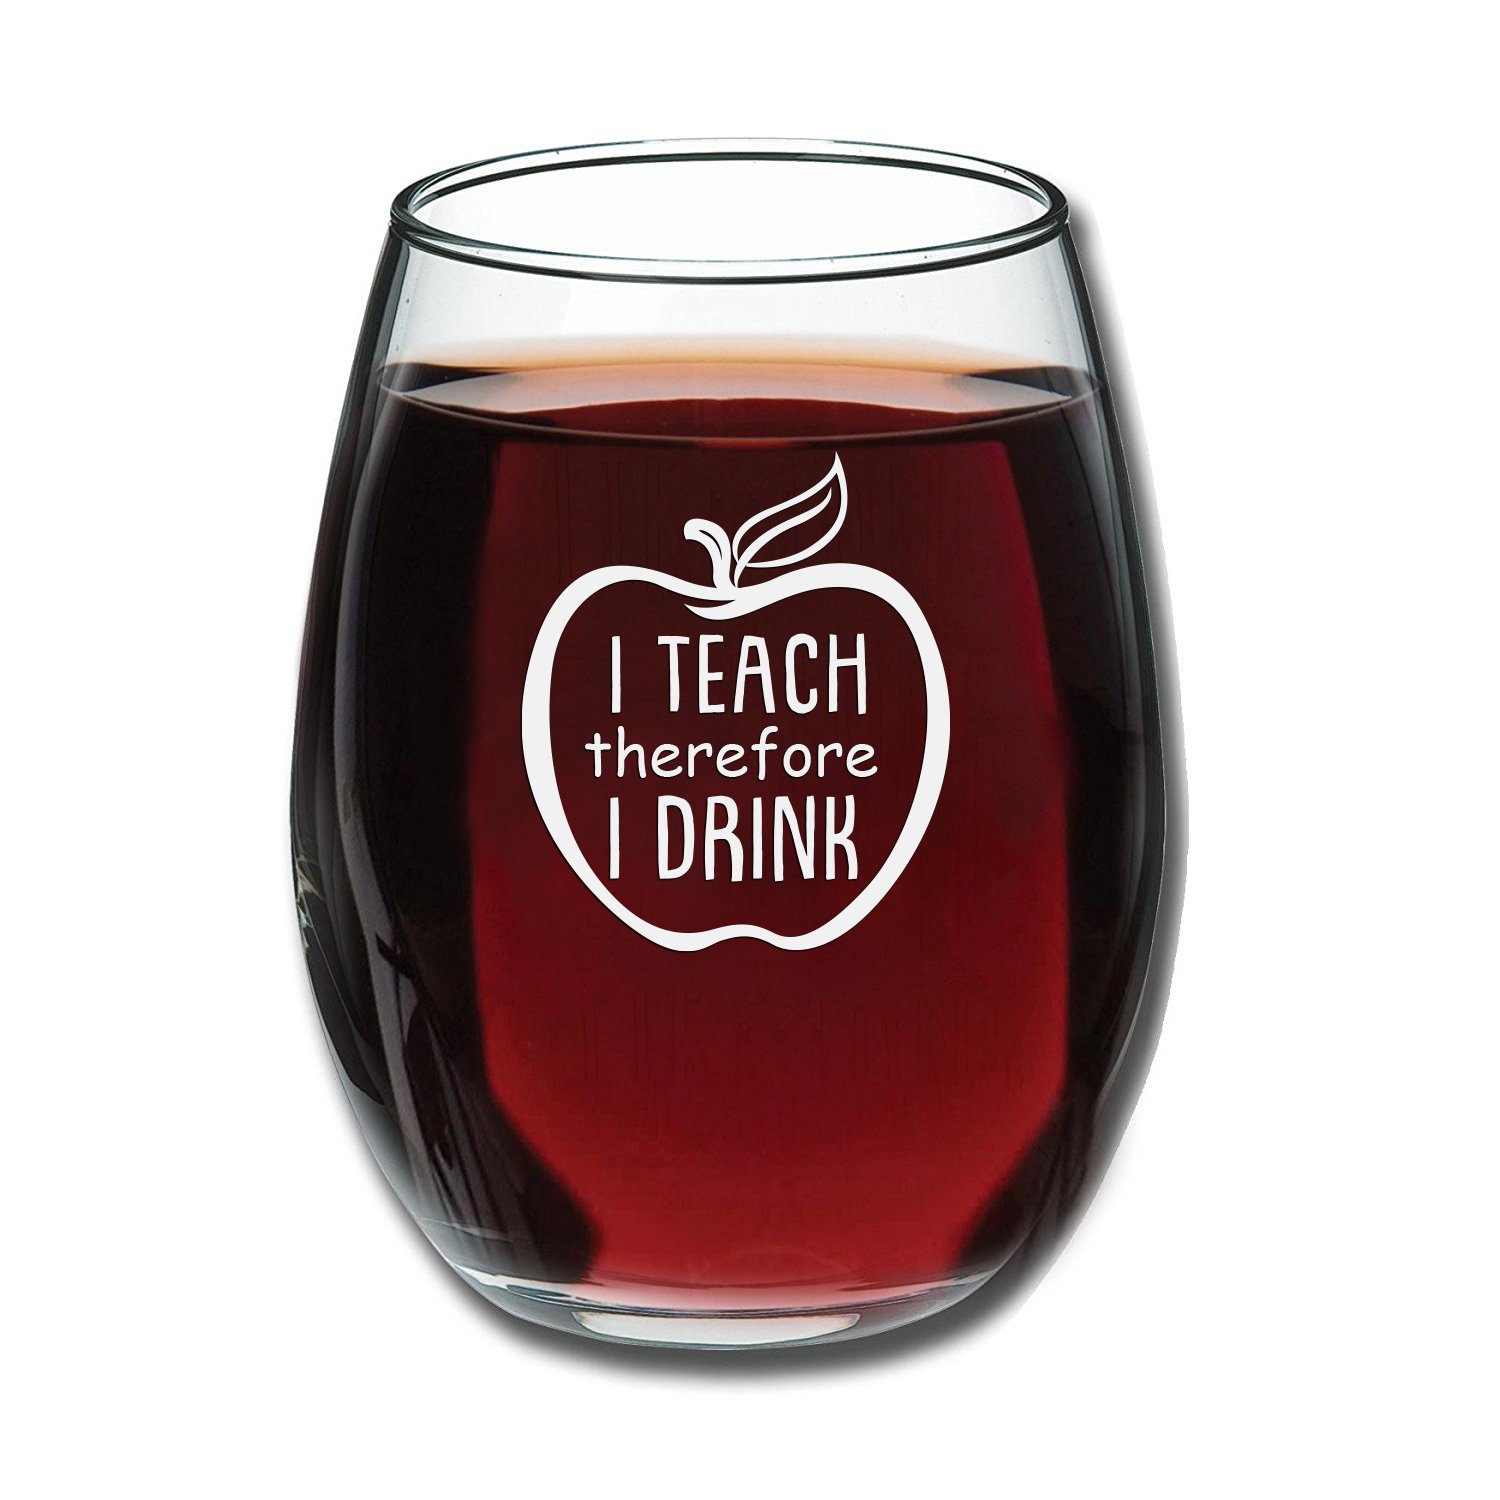 I Teach Therefore I Drink - Funny Stemless Wine Glass 15 oz - Gift for Teacher or Professor